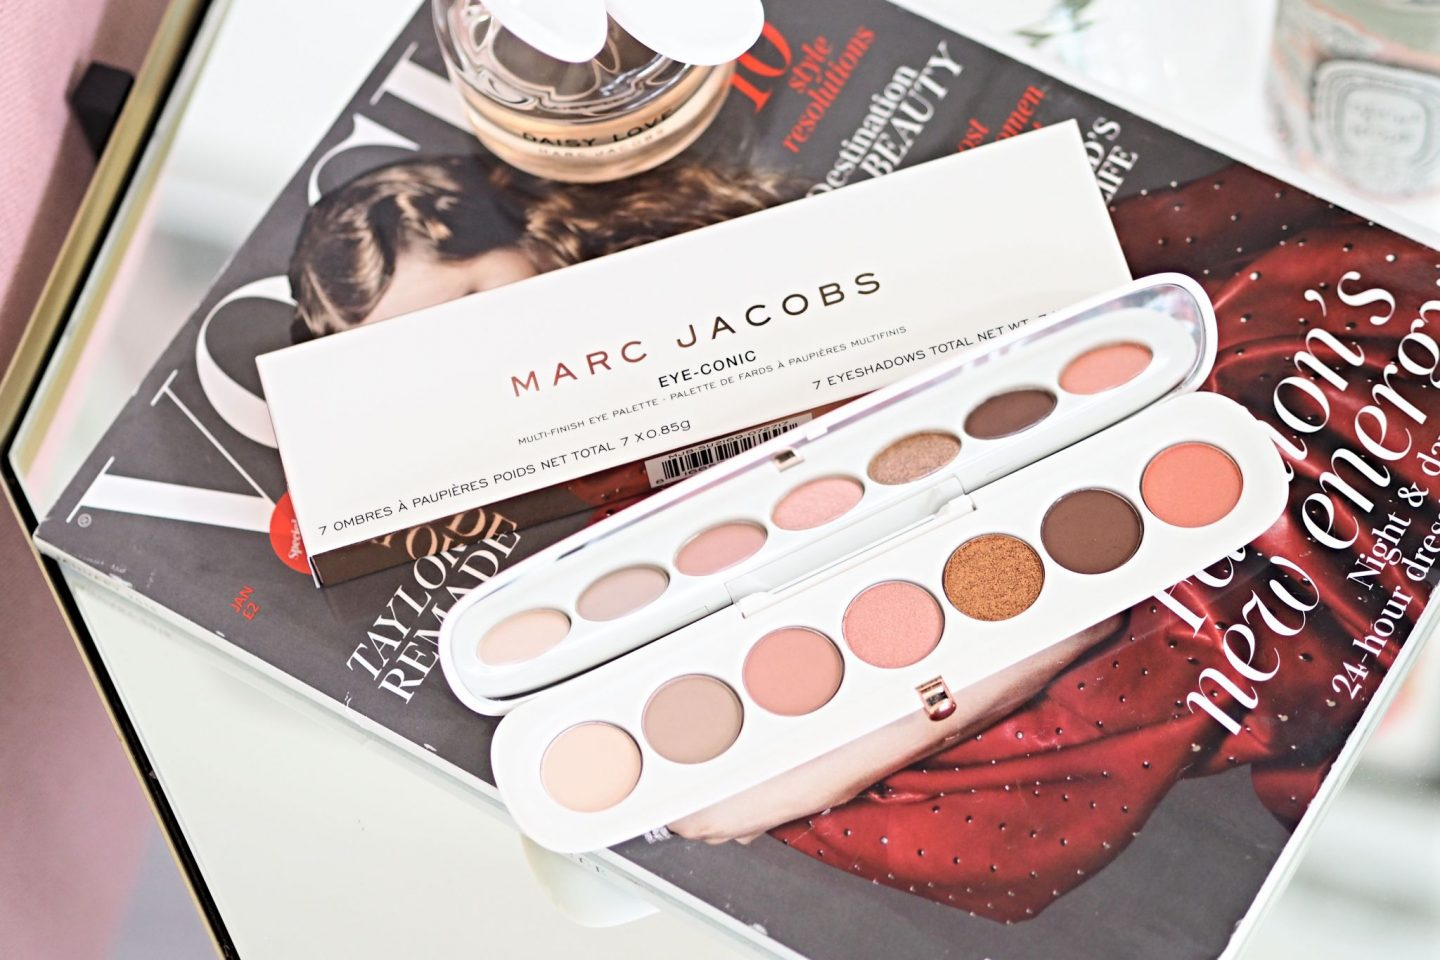 Marc Jacobs Eye-Conic Fantascene Palette Review